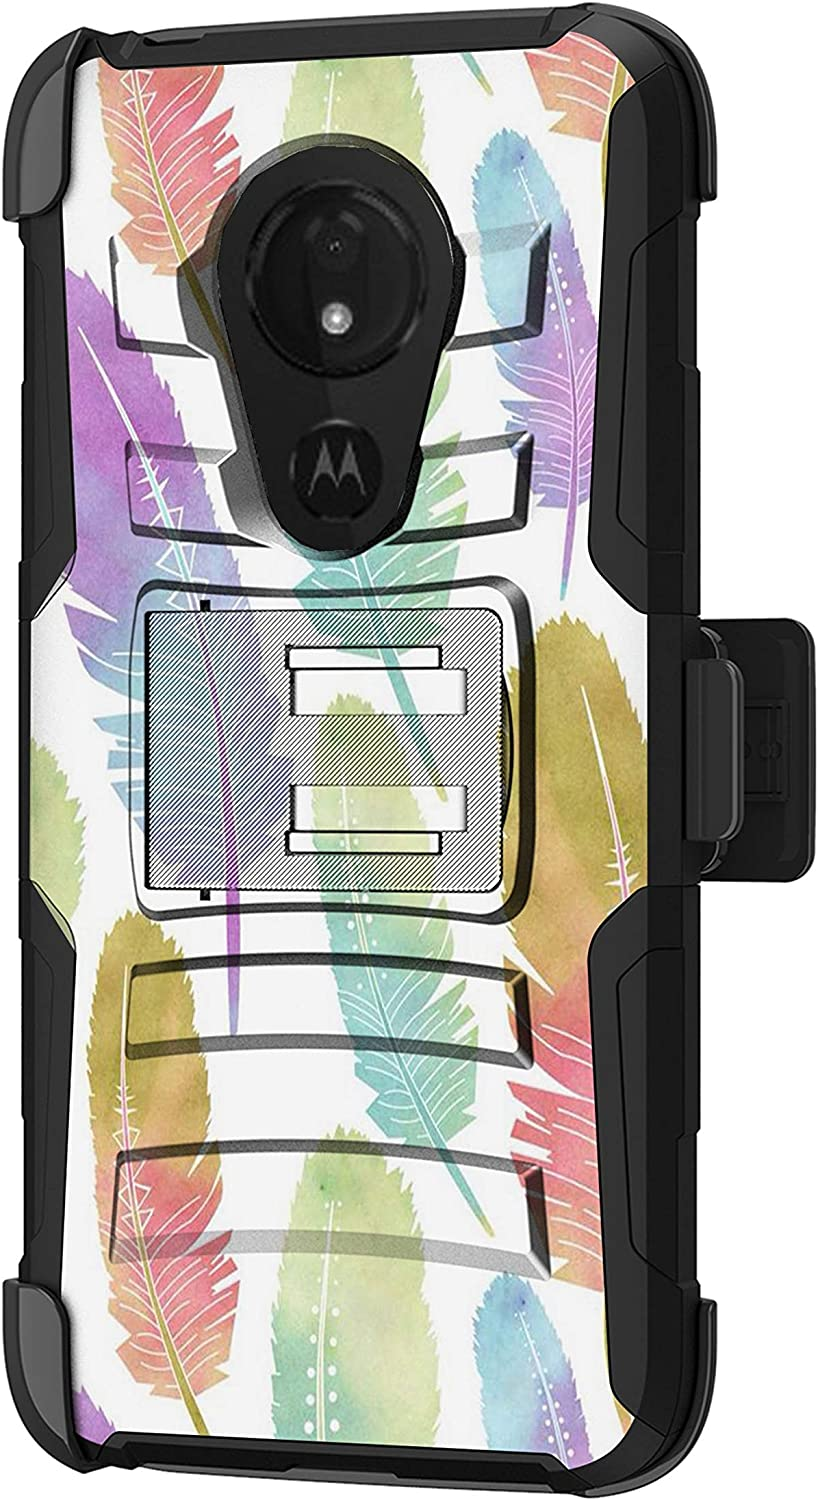 TurtleArmor   Compatible with Motorola Moto G7 Power Case   Moto G7 Supra Case [Hyper Shock] Fitted Armor Holster Belt Clip Hybrid Cover Stand Shock Protective Case - Colorful Feathers